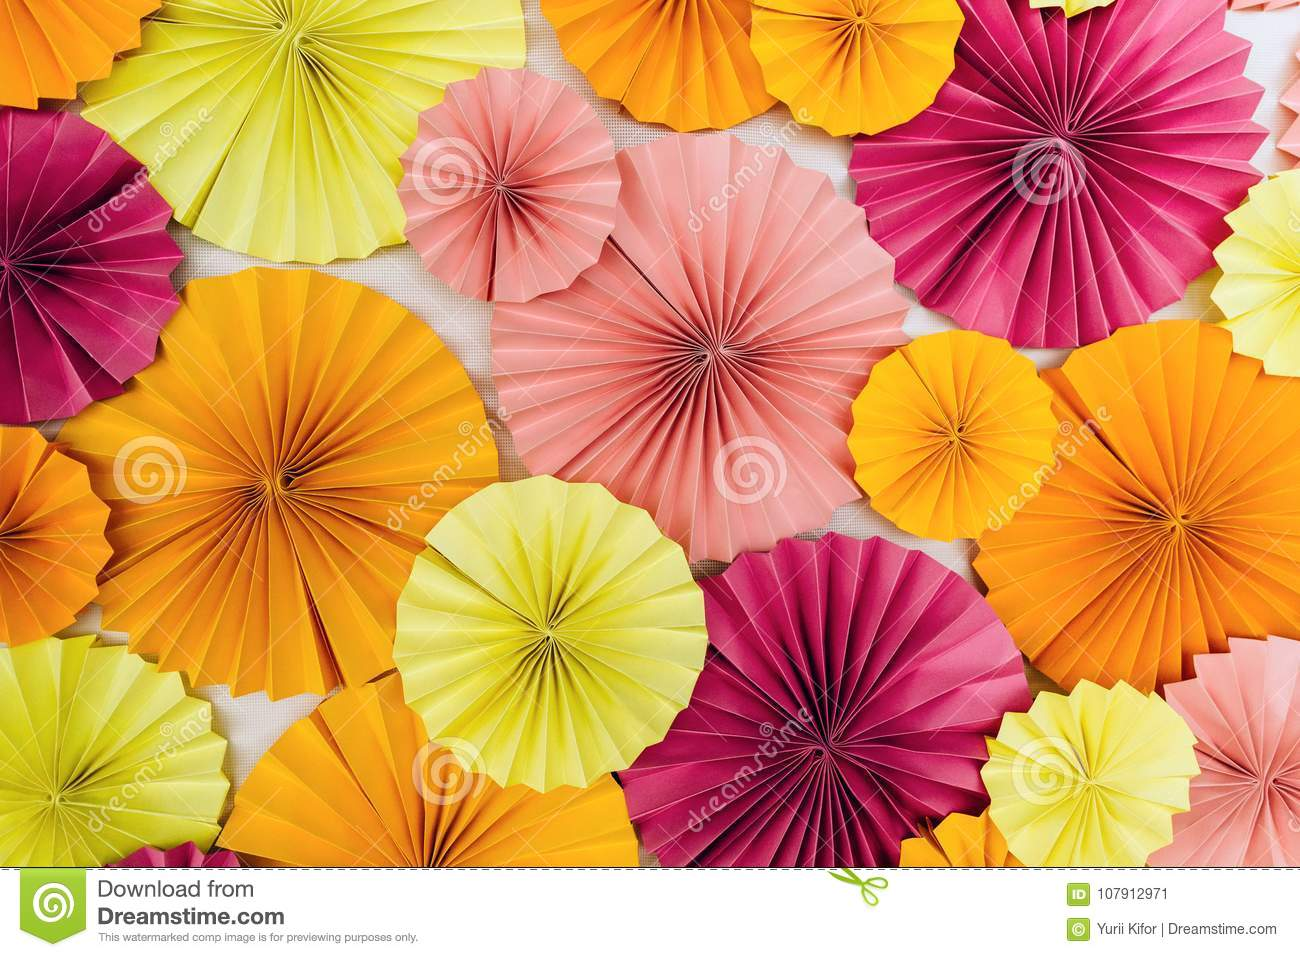 The Beutiful Papier-mache Color Background Stock Image - Image of ...